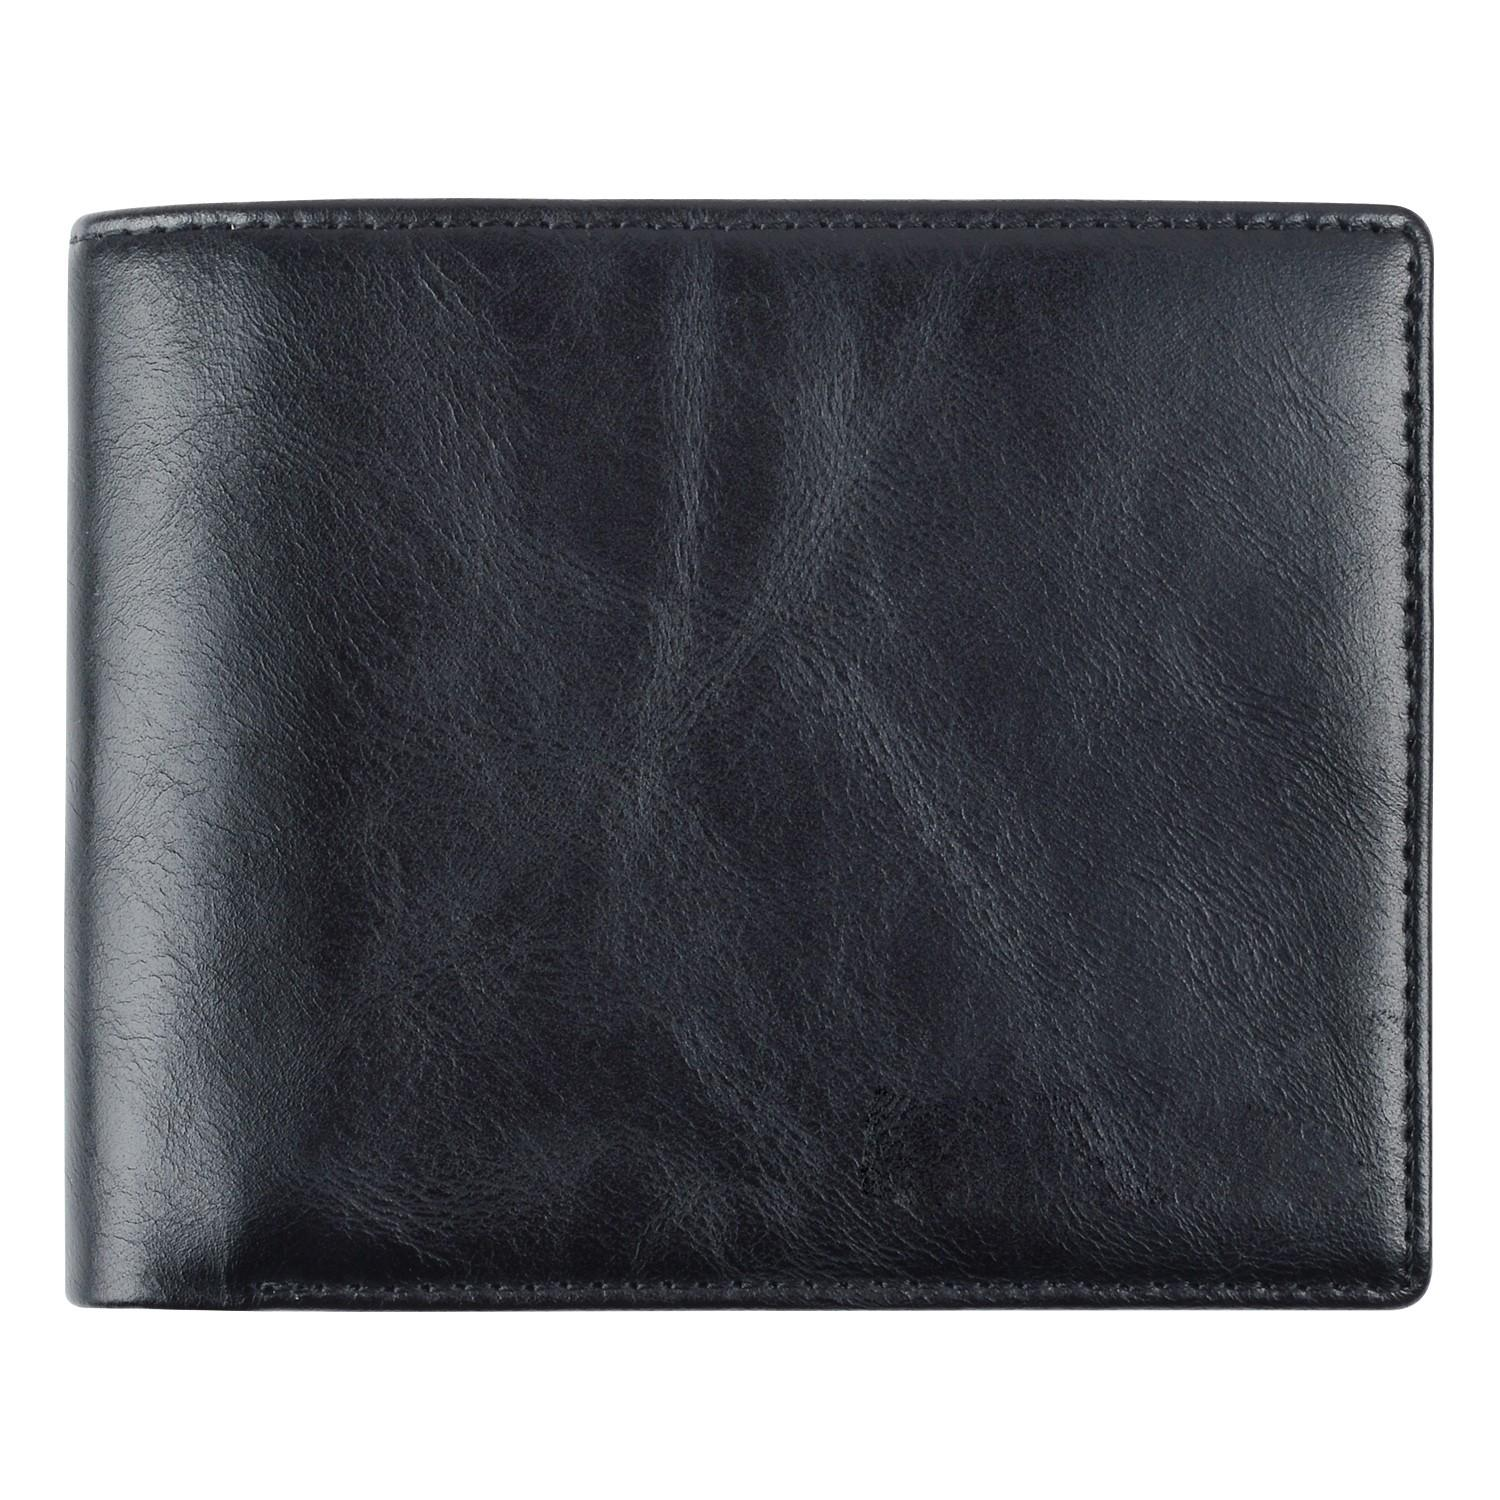 AIVI leather card case wallet supply for iphone XR-3